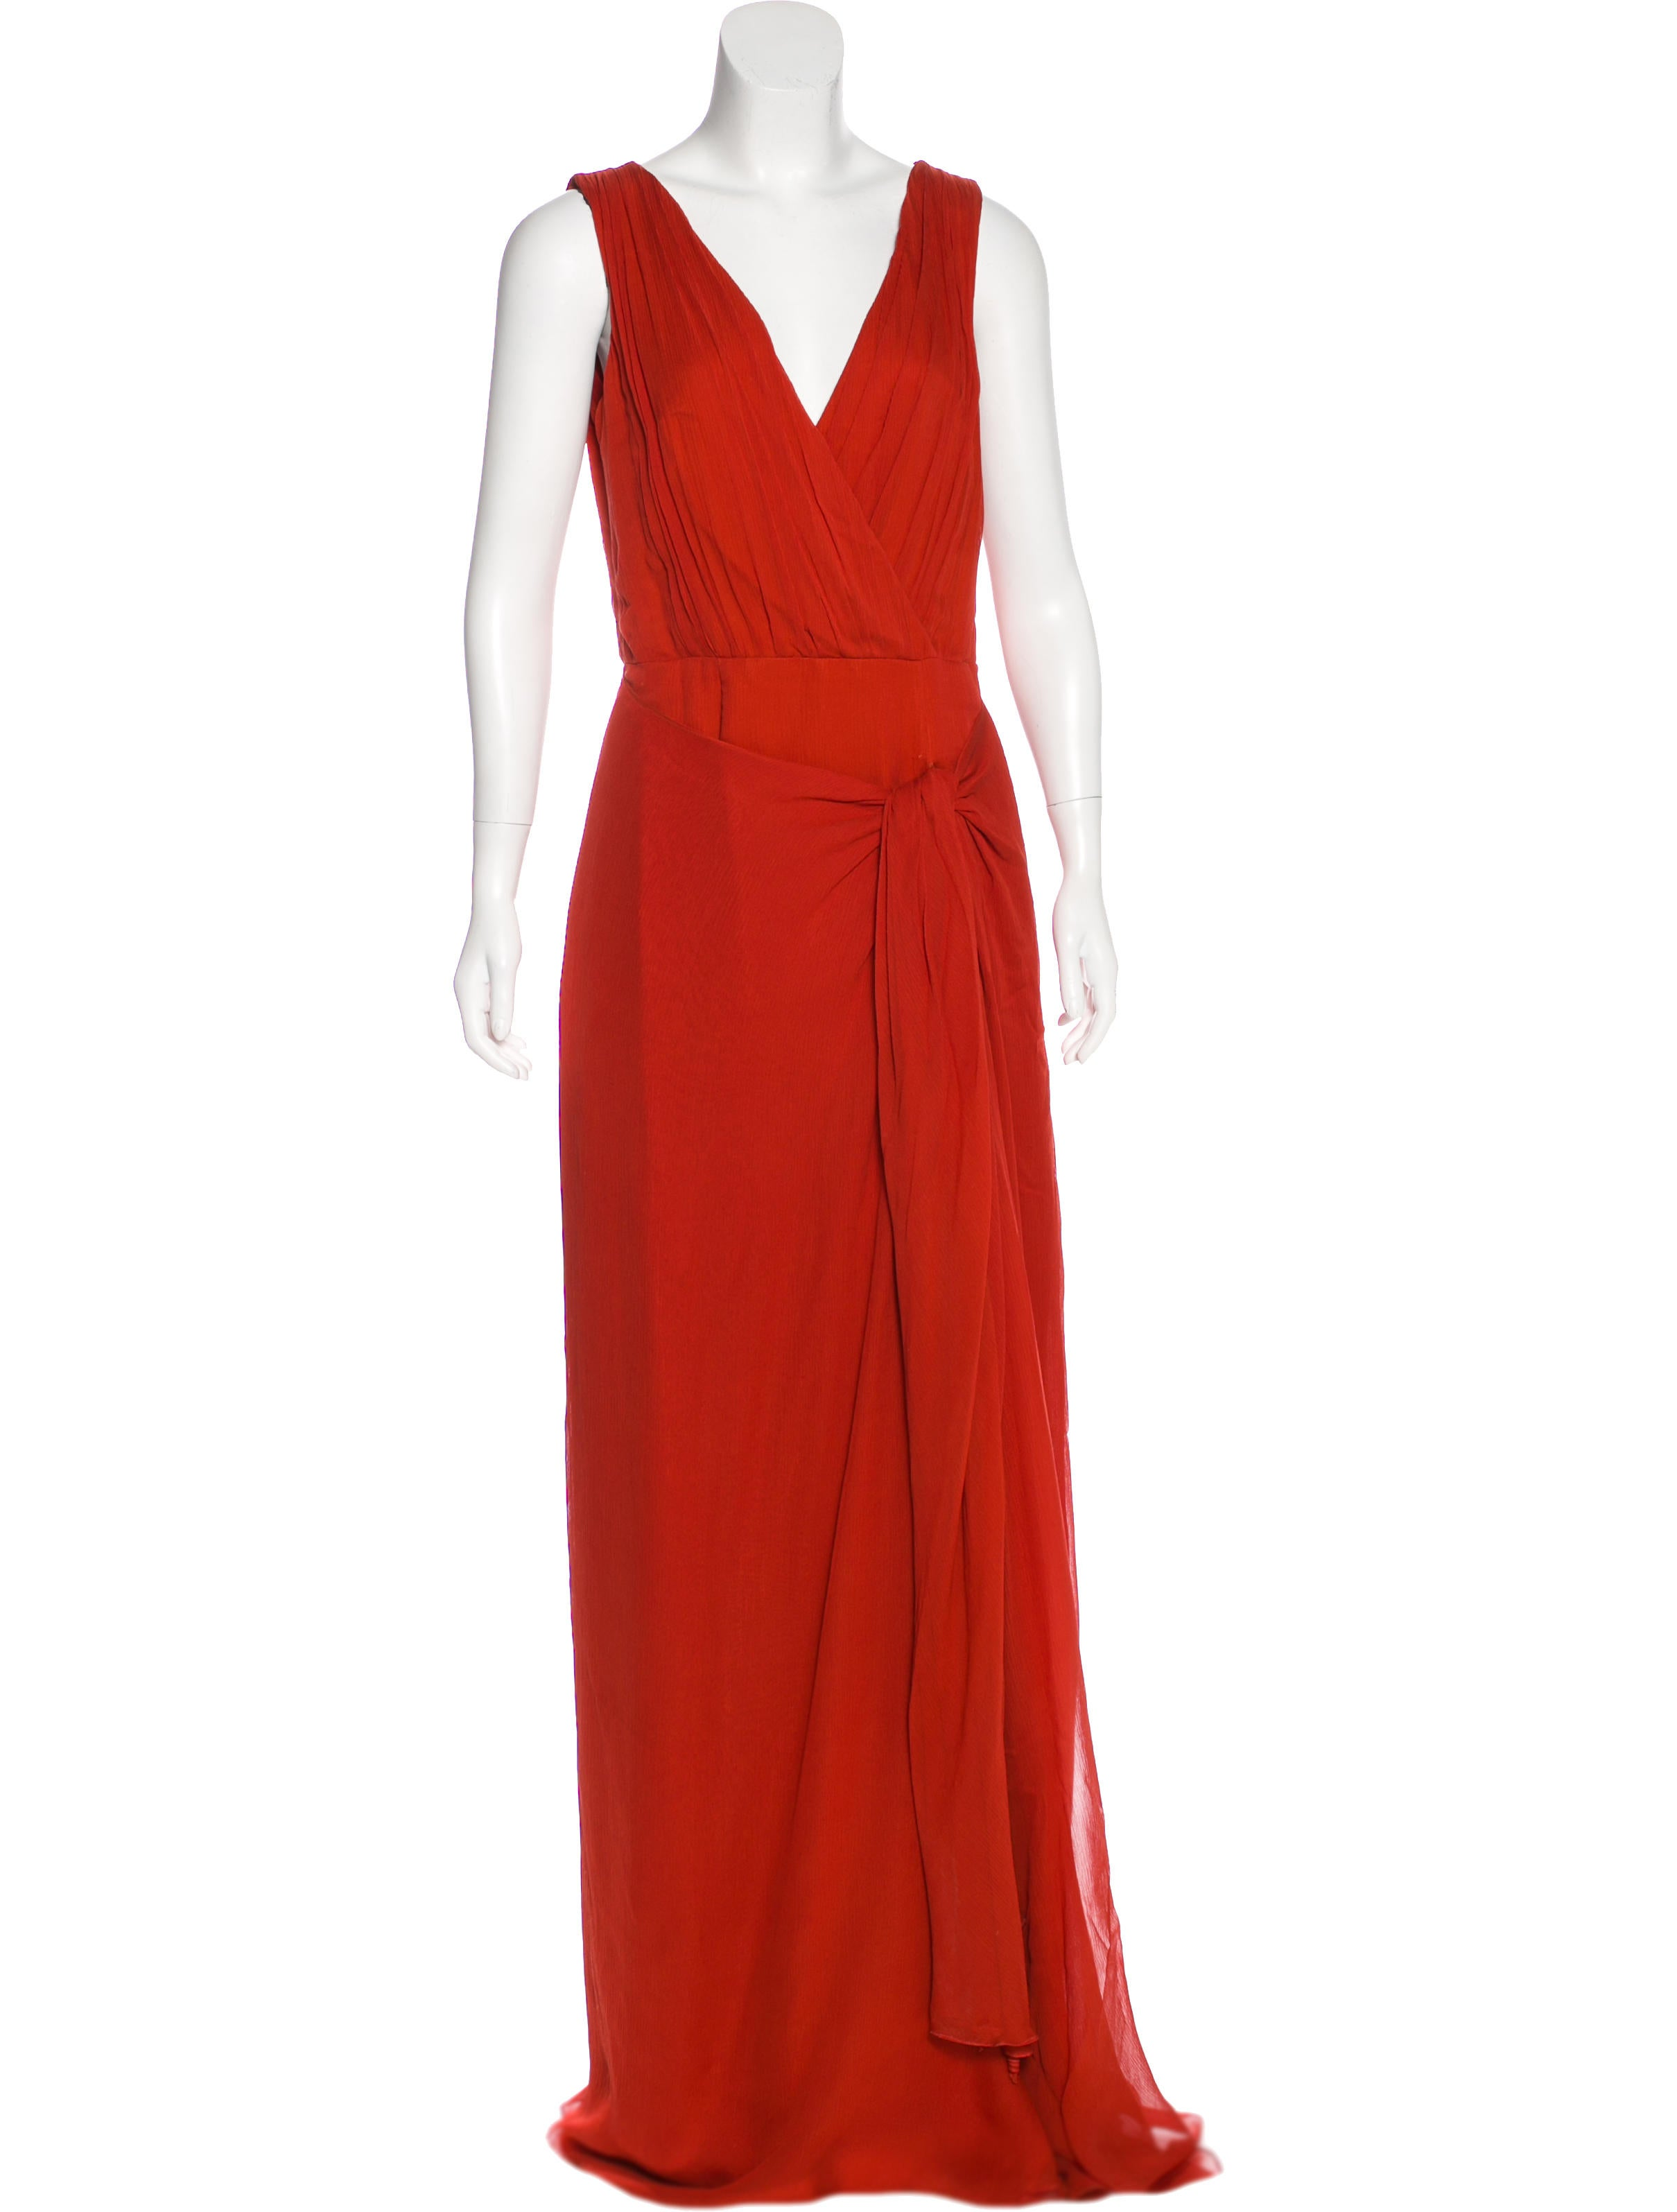 Jason Wu Silk Evening Gown - Dresses - JAS24609 | The RealReal